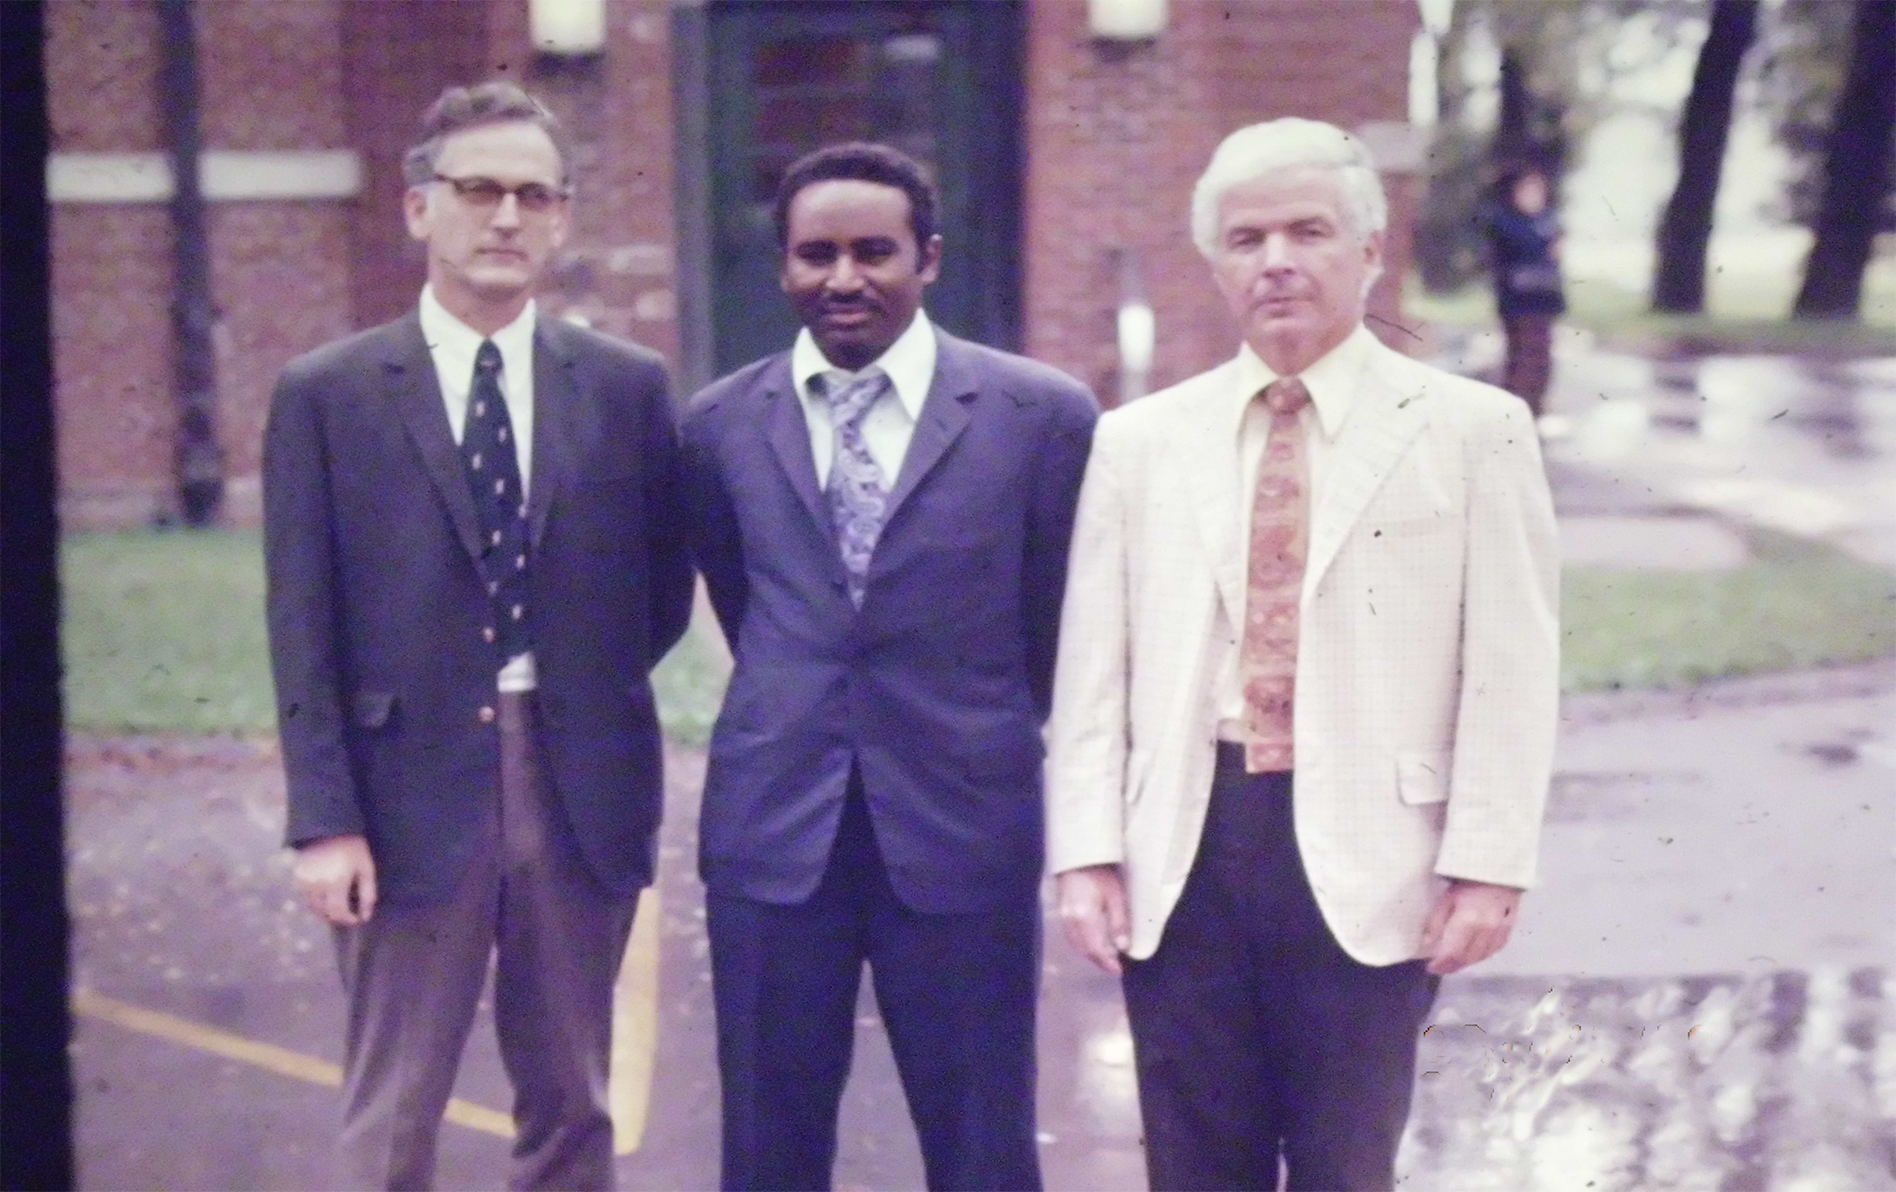 Prof-Elsheikh-visiting-professor-to-a-blastomycosis-hospital-in-Kentucky-USA-1974